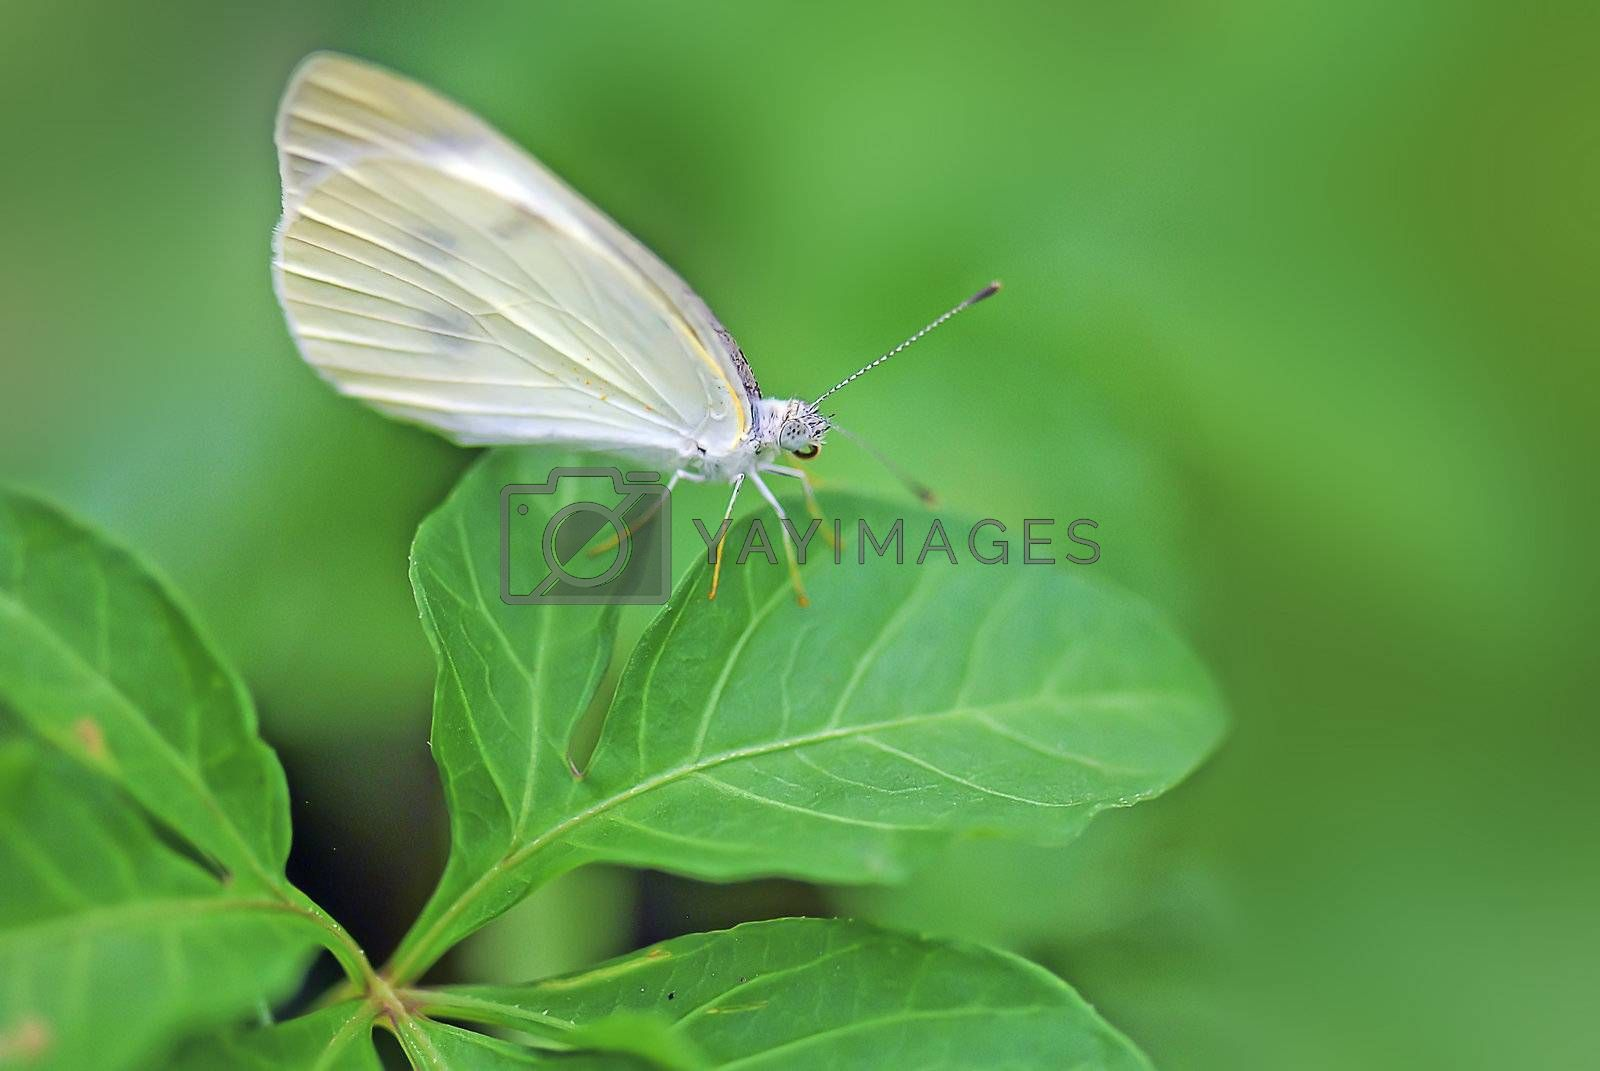 The butterfly stopped in the grass